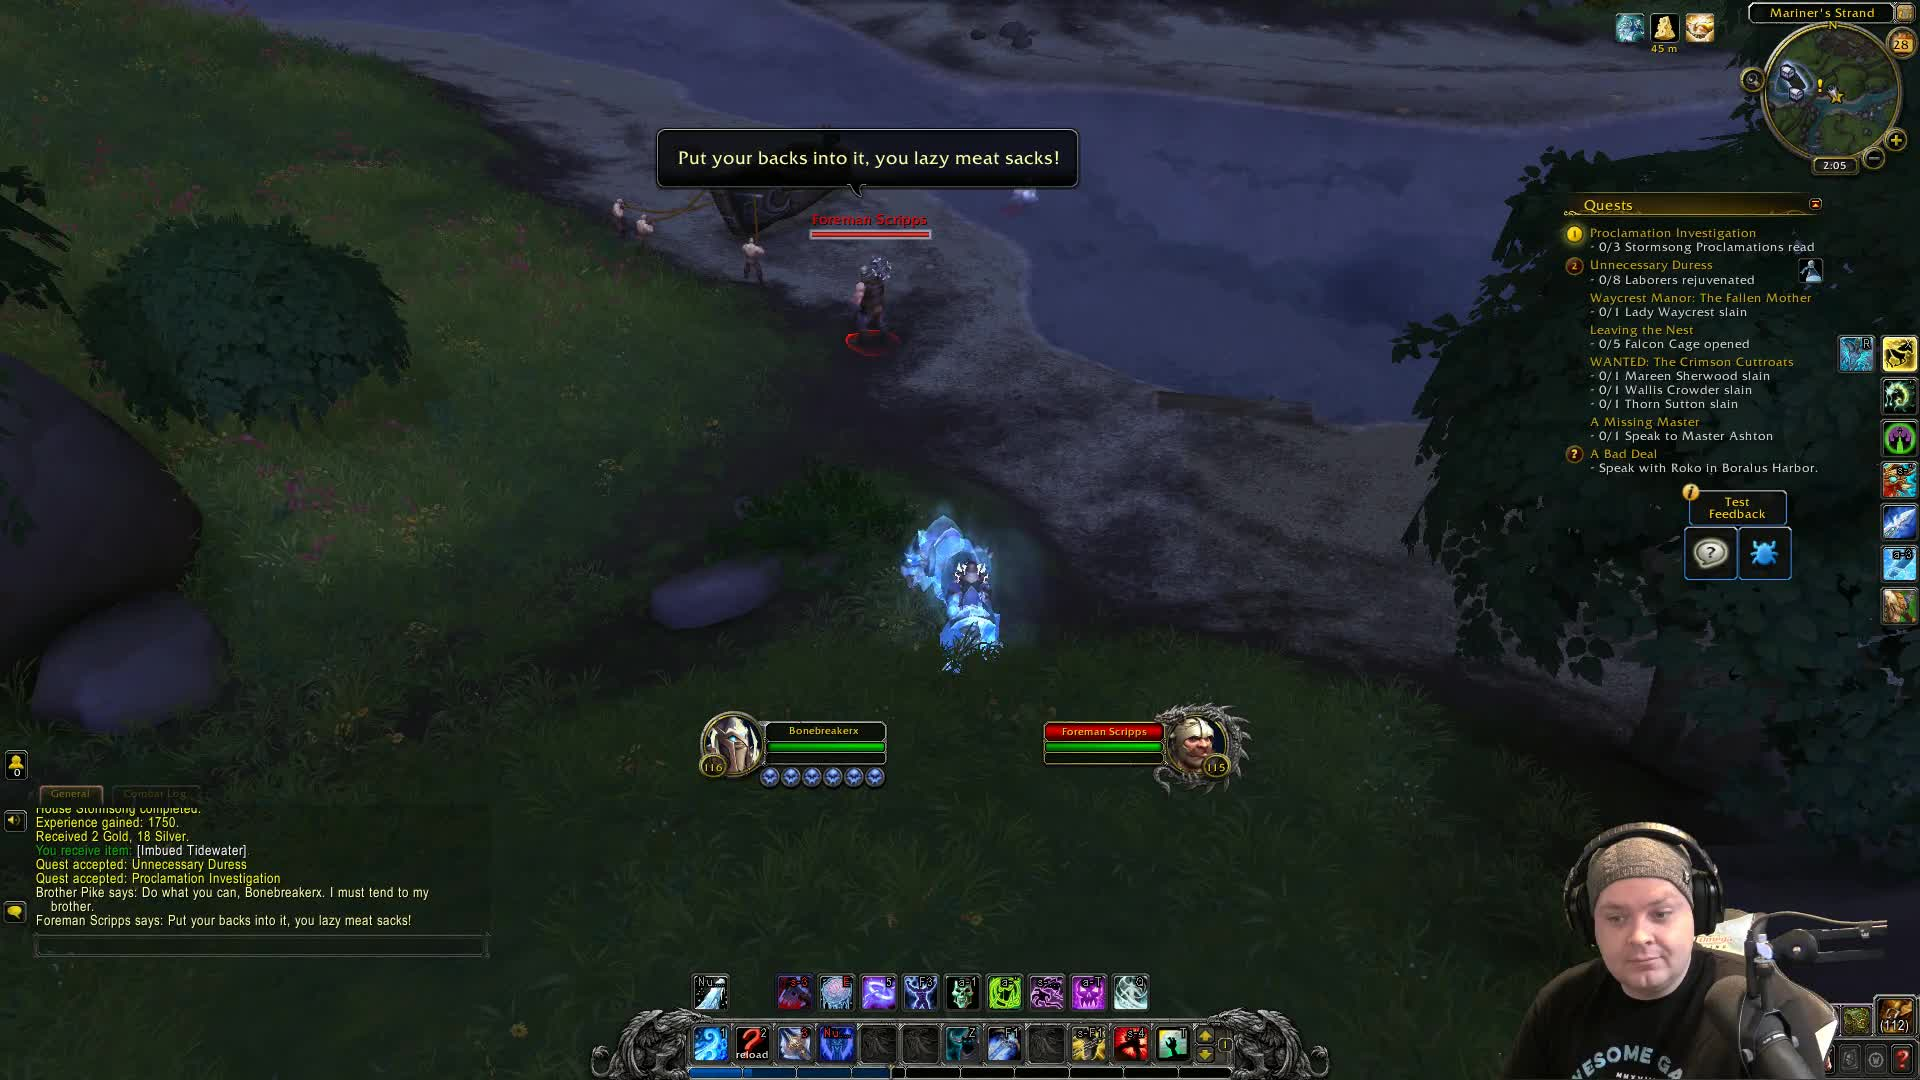 4 5 seconds to get going BfA GCD change - Twitch